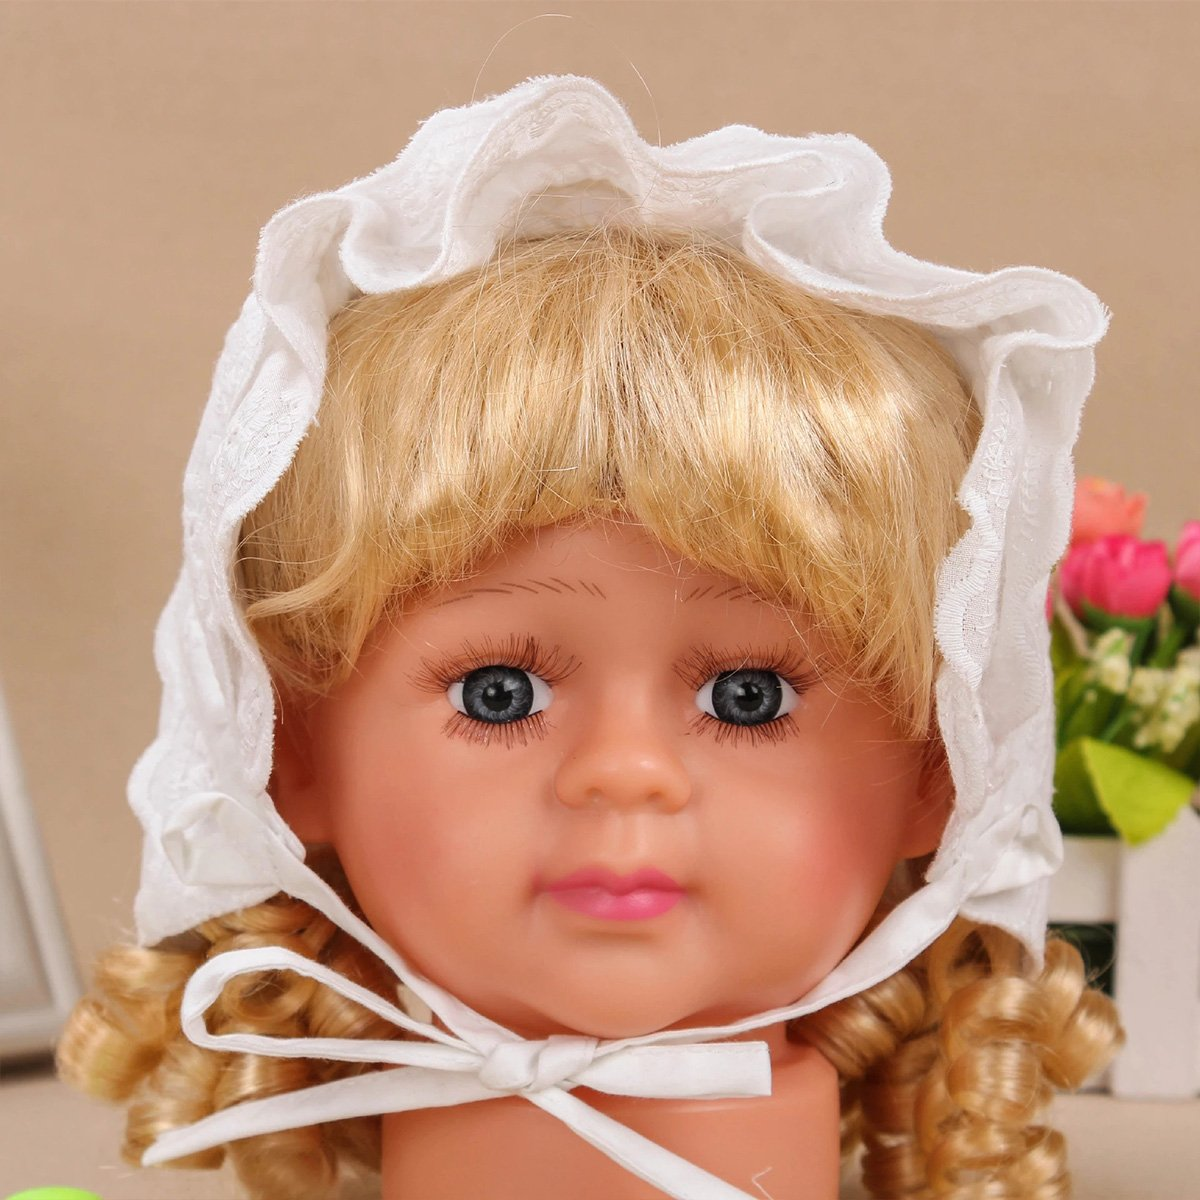 Slowera Cap Baby Girls 100% Cotton Double Brimmed Eyelet Lace Bonnet with Flowers (0-3 Months, White) by Slowera (Image #5)